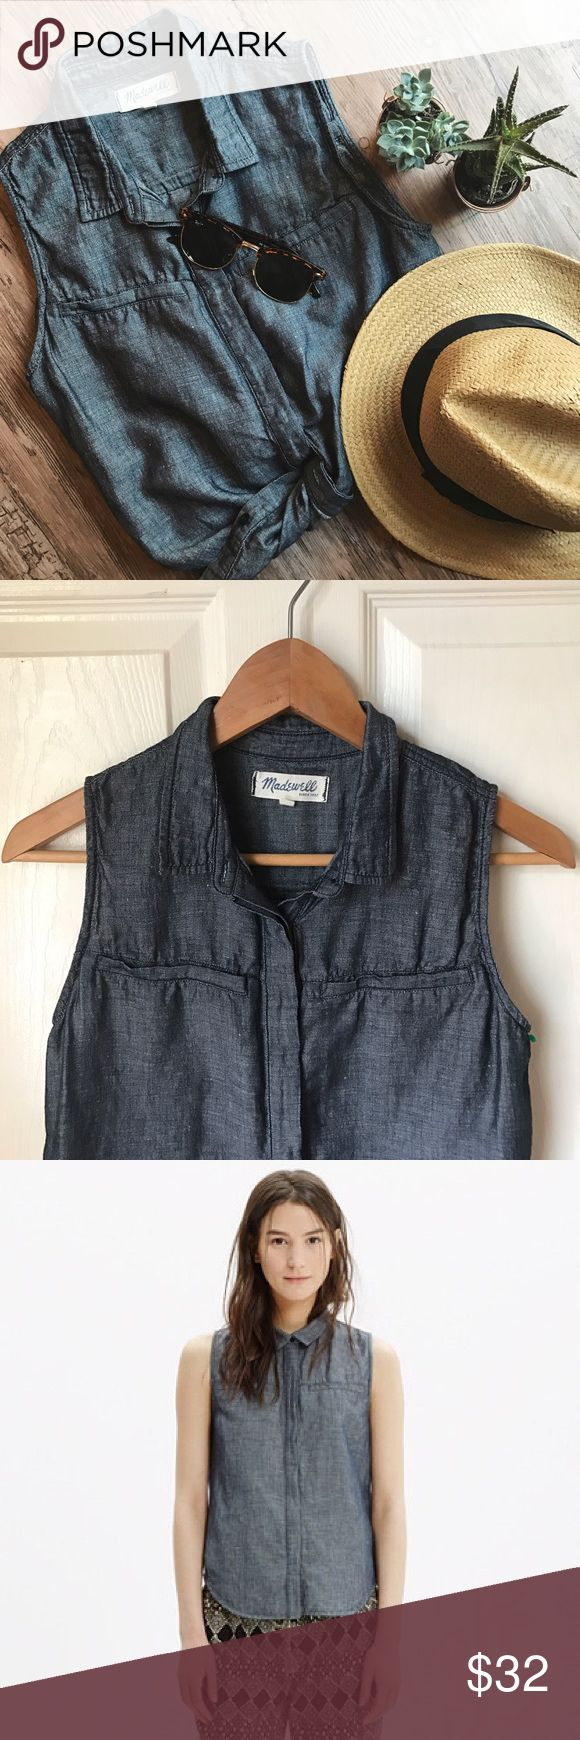 🍦Madewell sleeveless denim shirt A sleeveless chambray button-down shirt, perfect on its own or layered best-style over a tank. Size: XS.          🔴SALE!! Bundle Any 3 items marked with🍦for $39🔴 Madewell Tops Button Down Shirts